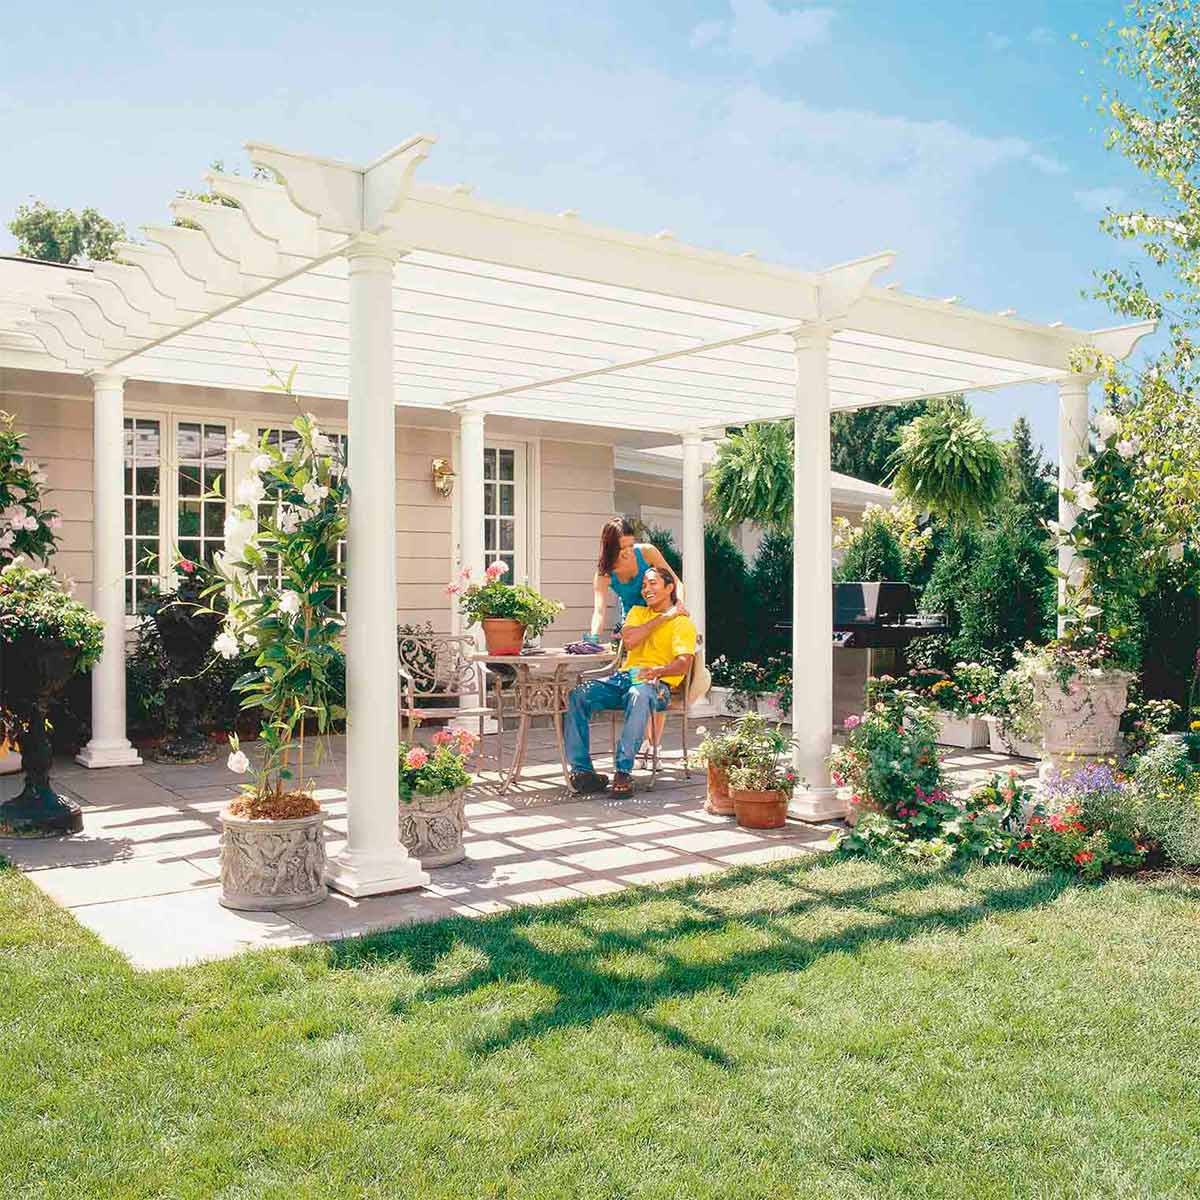 13 Before And After Backyard Makeovers You Can Do In A Weekend The throughout Backyard Makeover Ideas